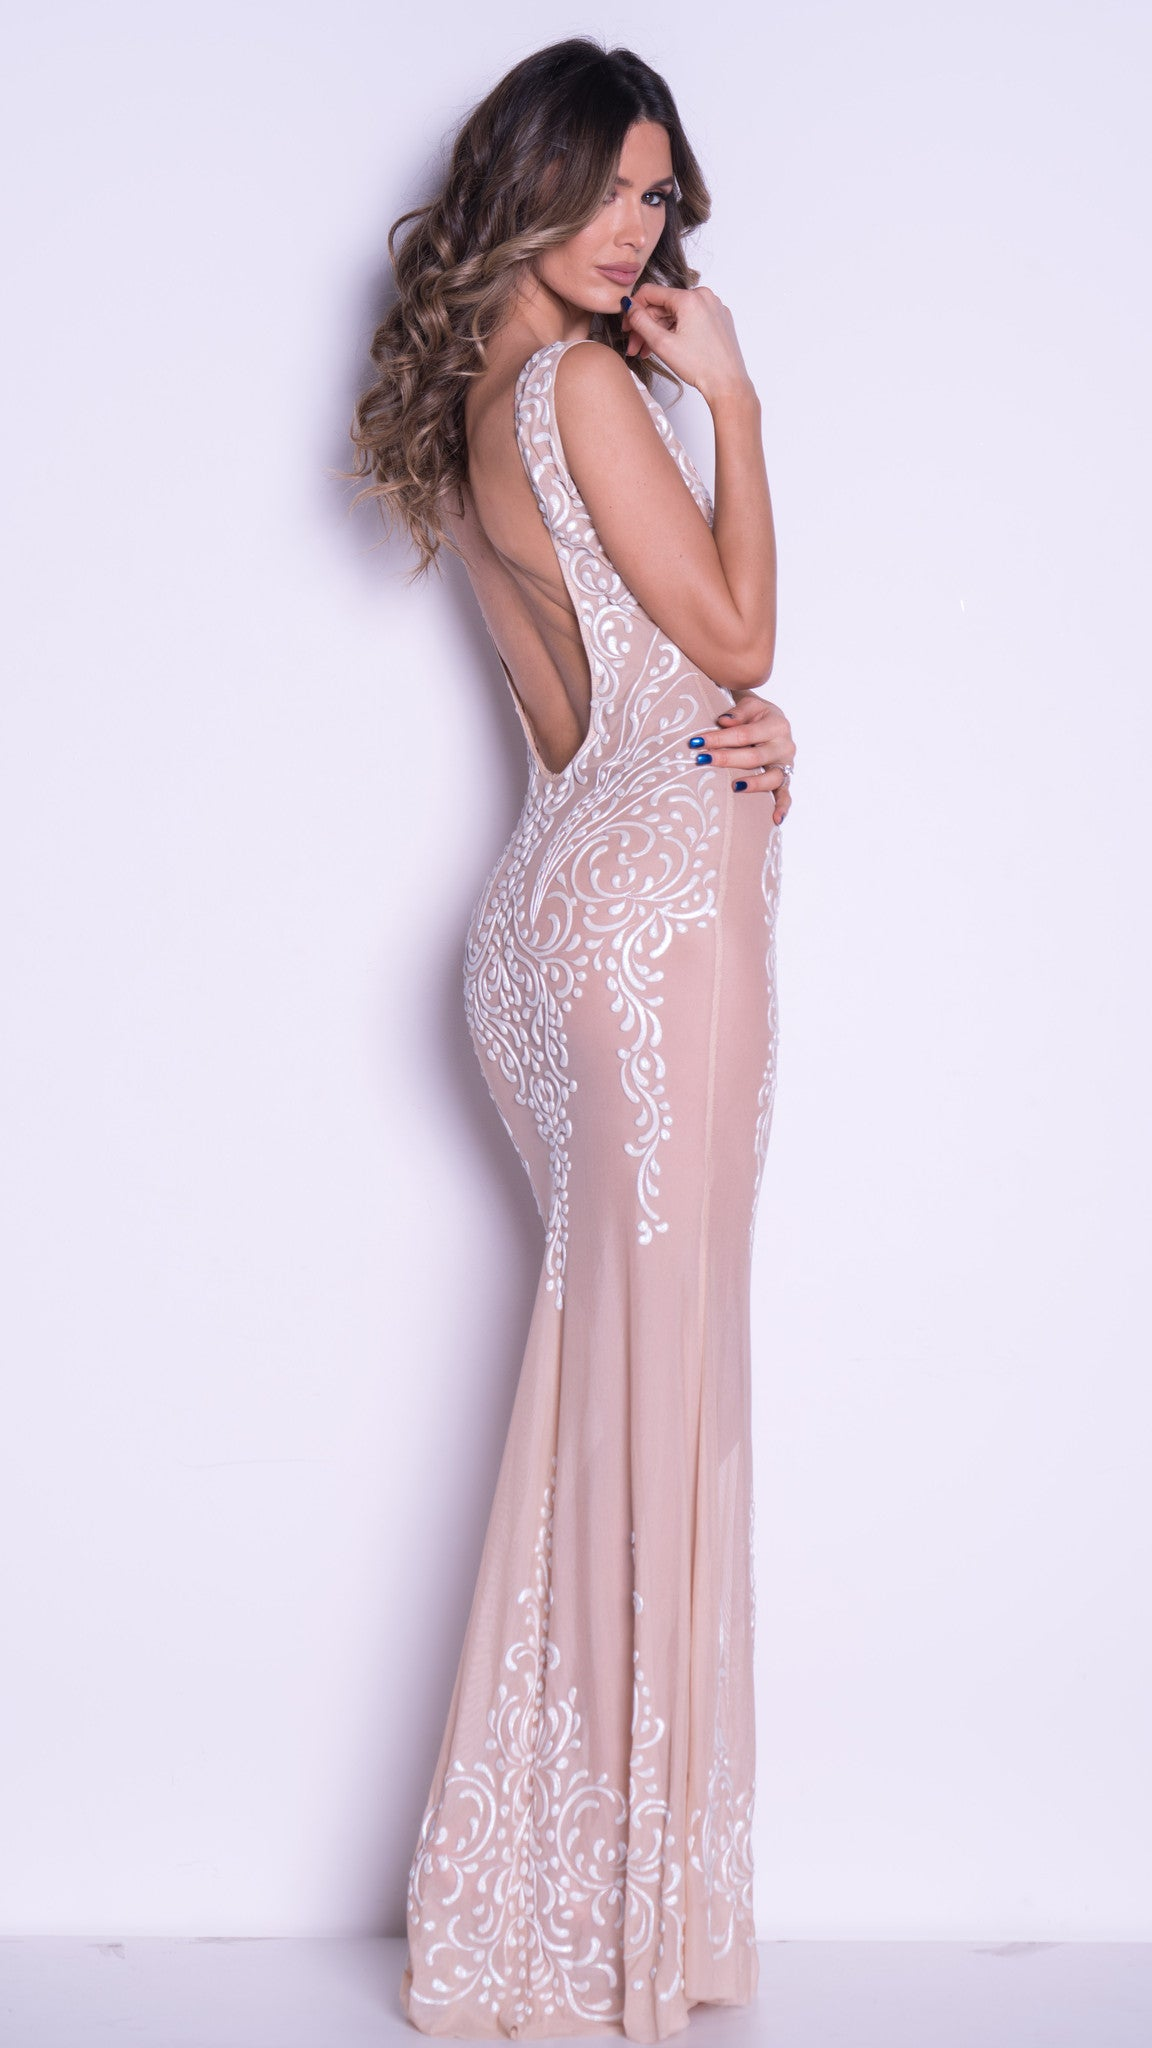 BARELY THERE GOWN IN NUDE WITH WHITE